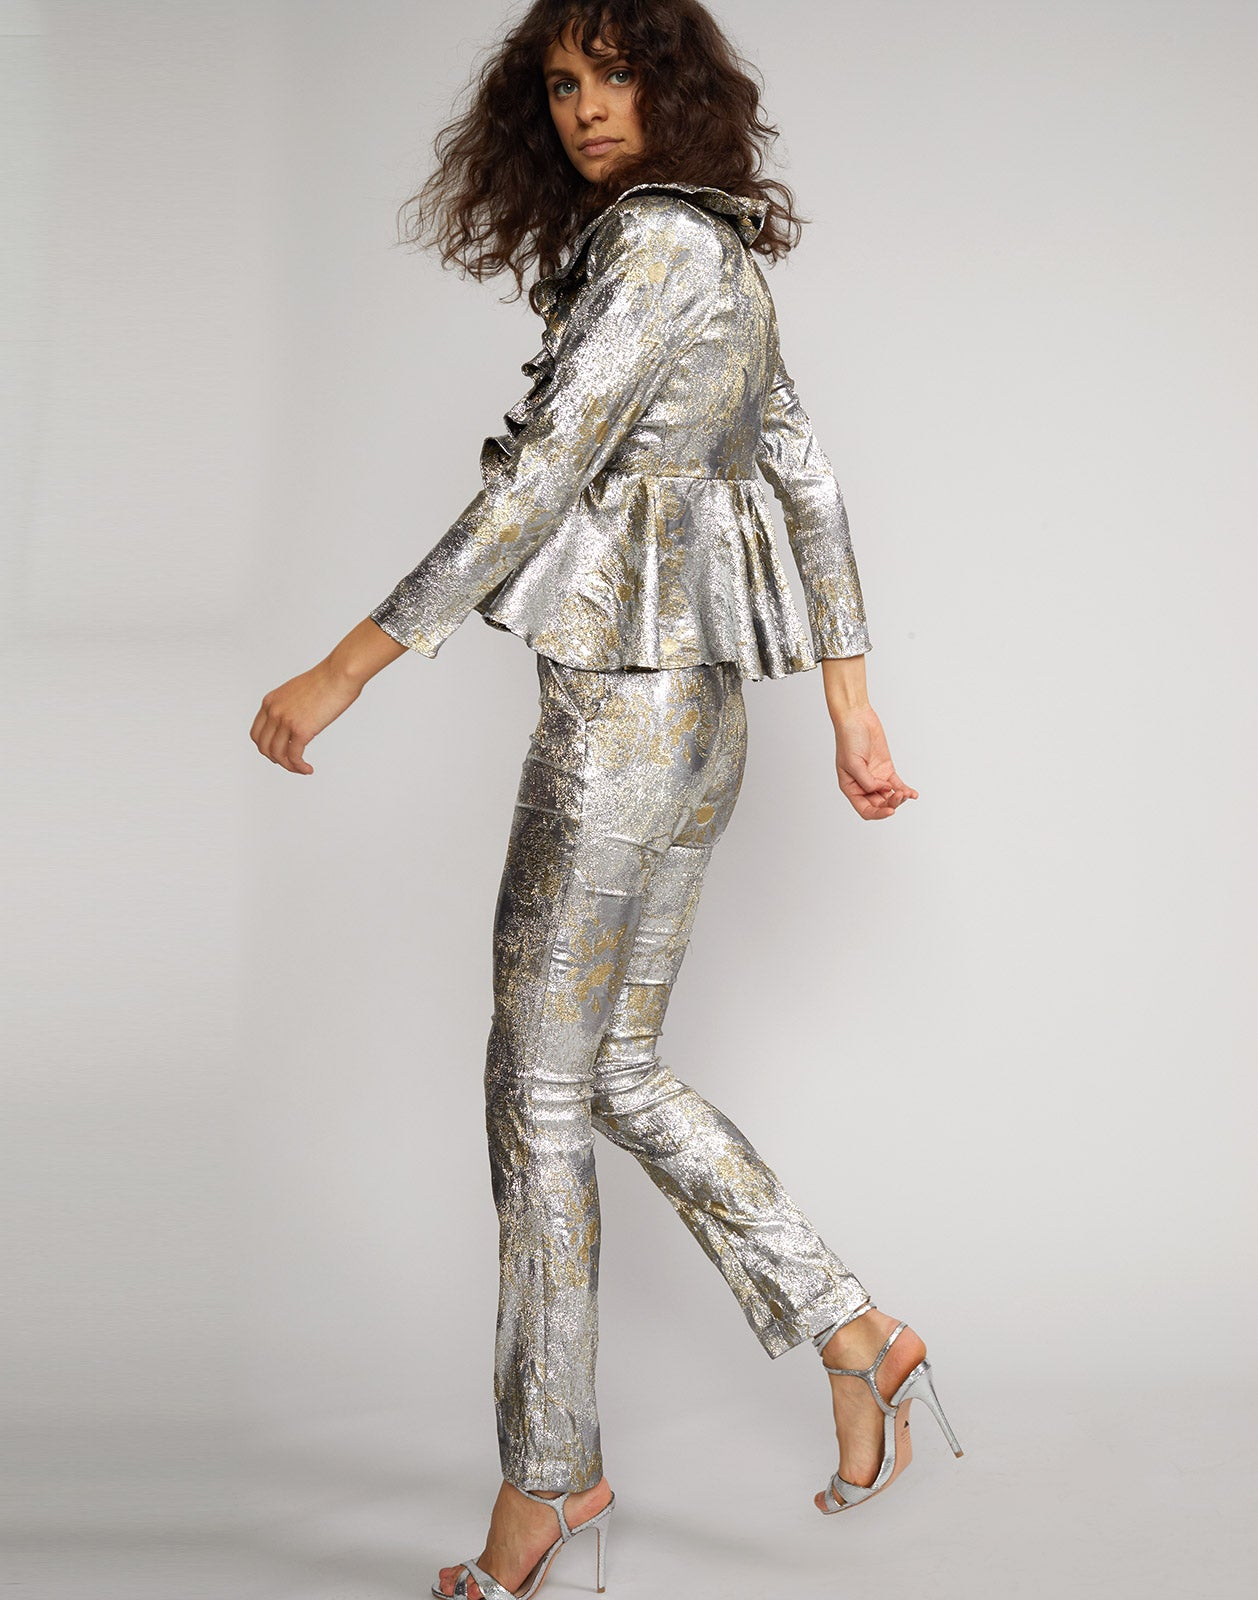 Side view of the Gold Coast metallic brocade pant and top.